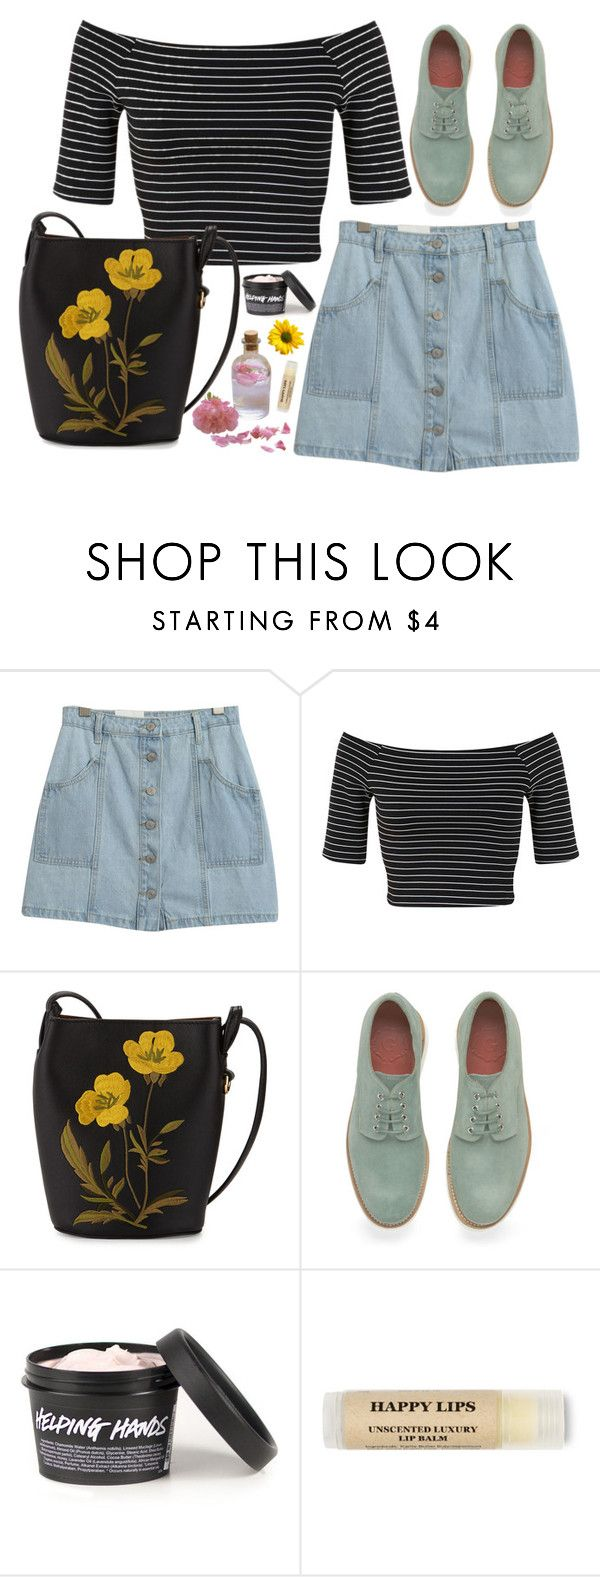 """All by myself being dramatic"" by taryn-ash ❤ liked on Polyvore featuring Chicnova Fashion, Miss Selfridge, STELLA McCARTNEY and Grenson"